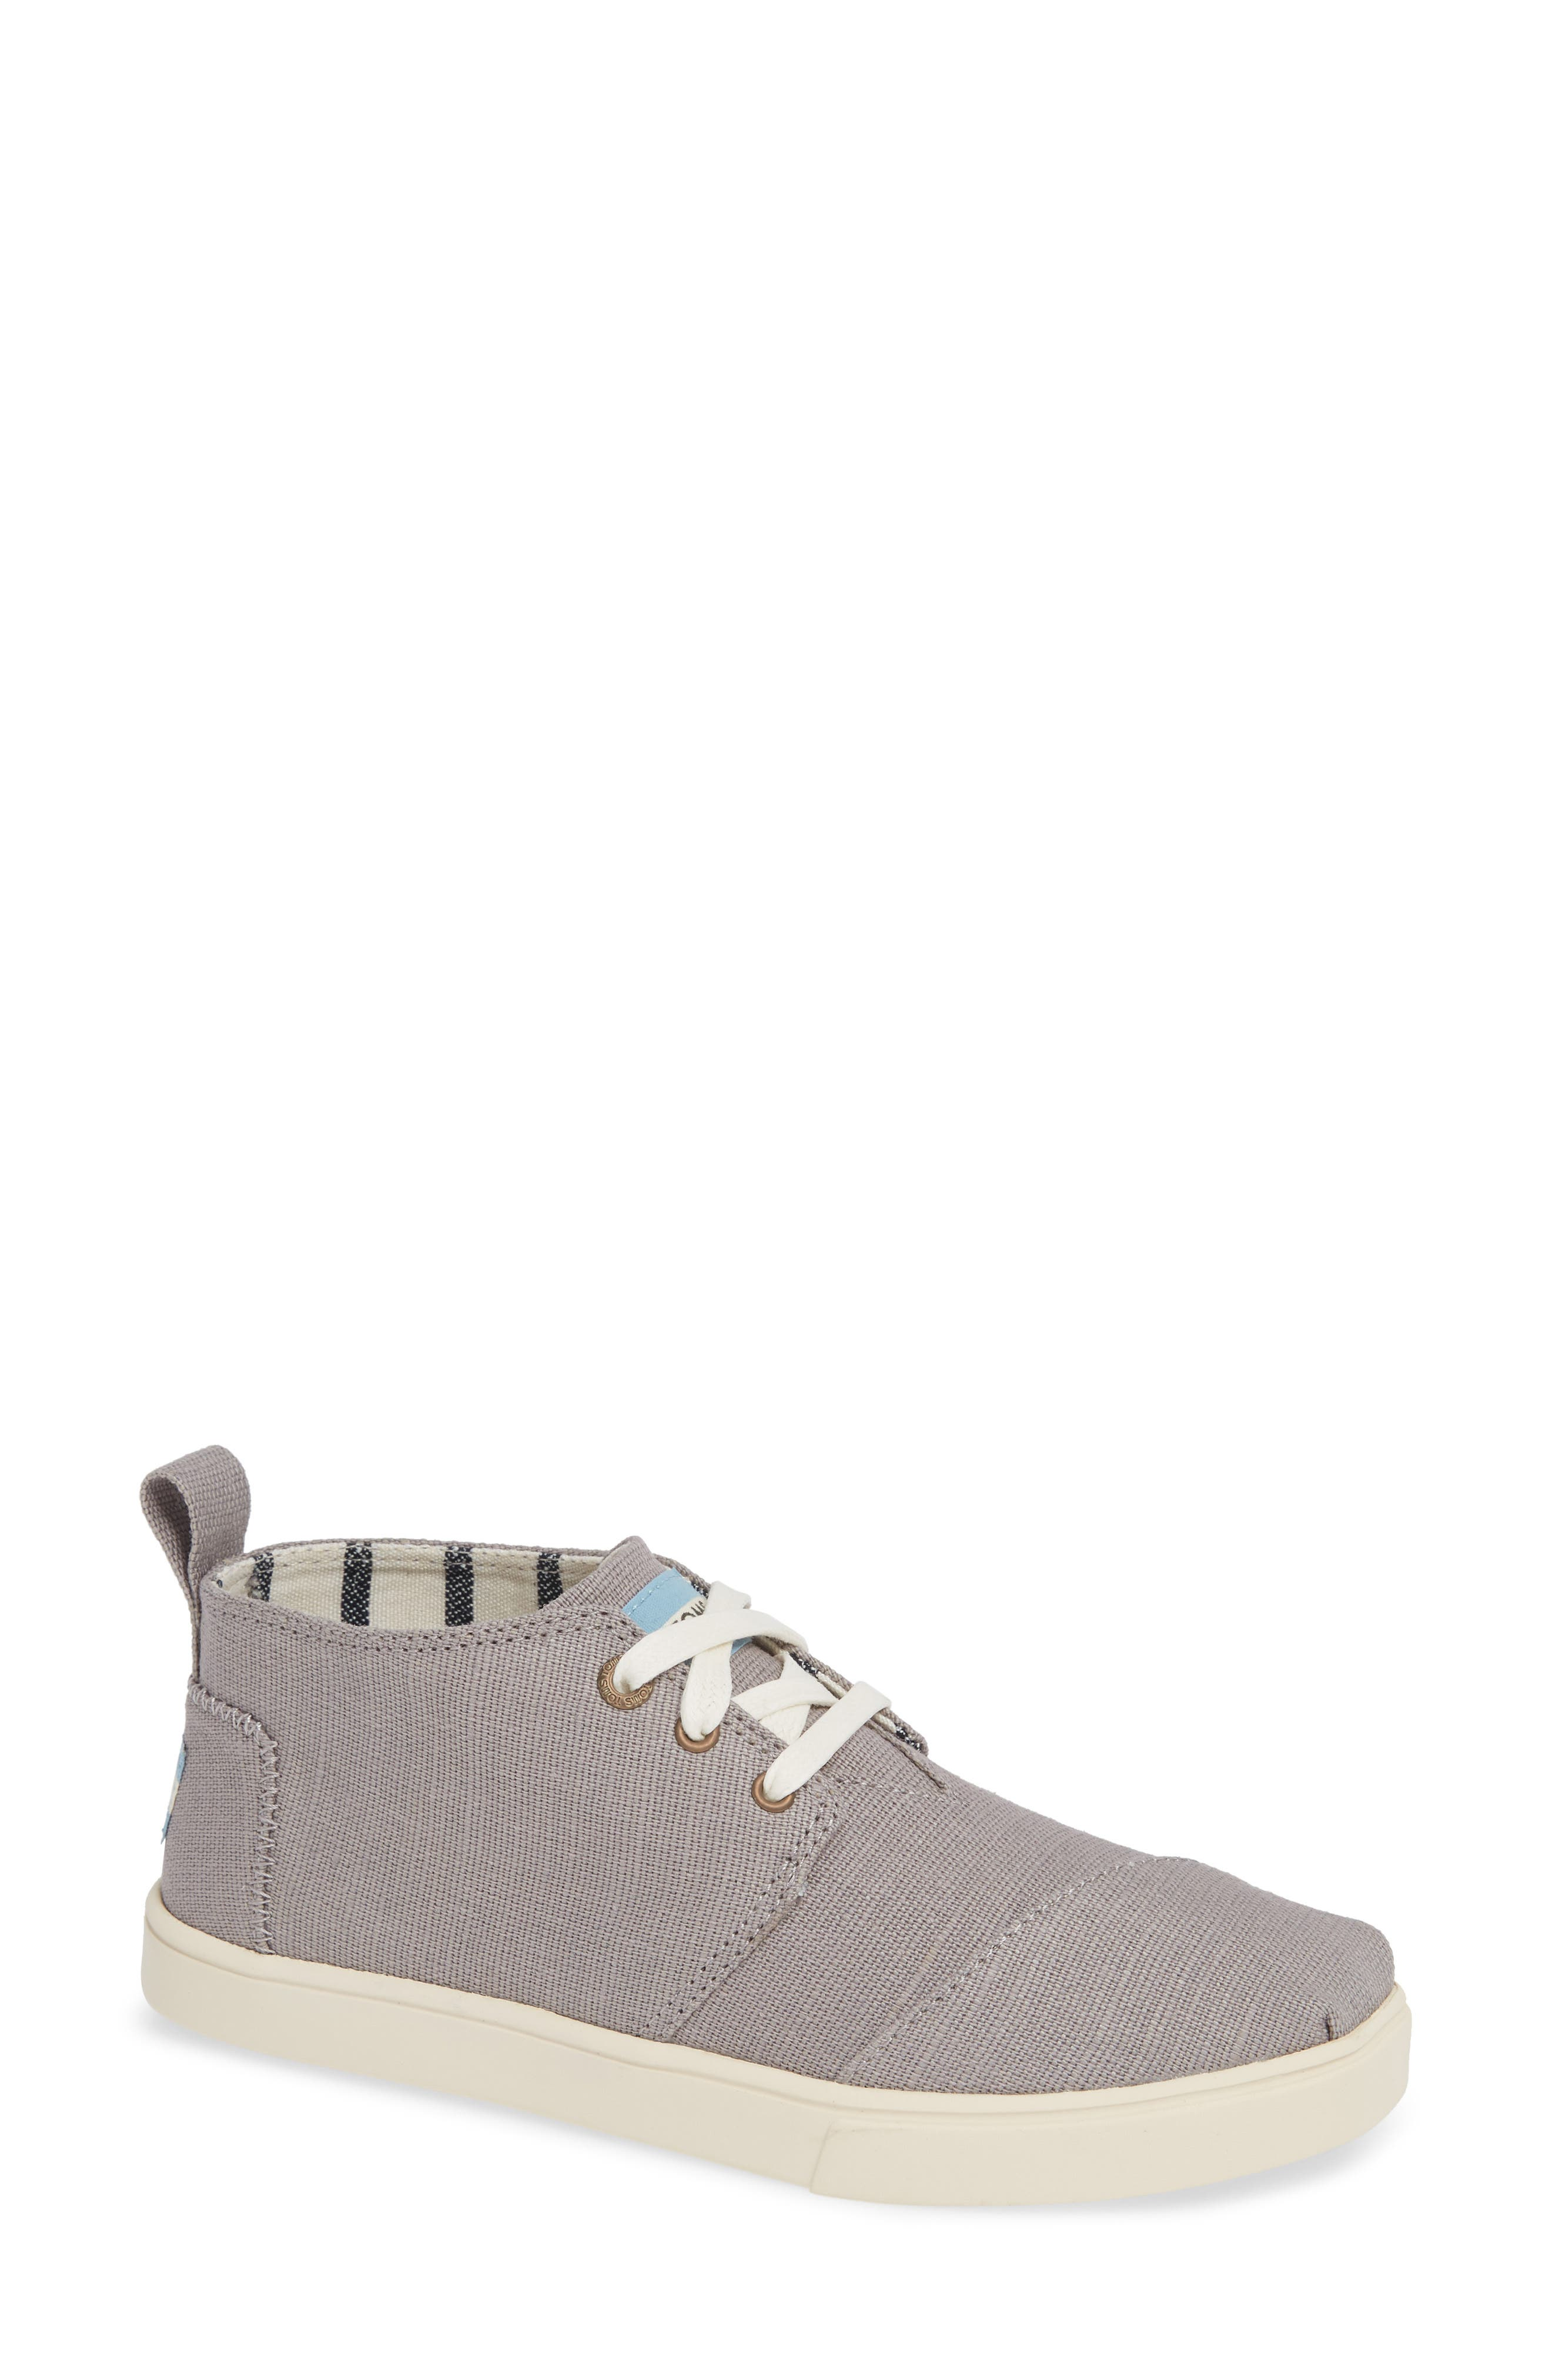 TOMS,                             Bota Bootie,                             Main thumbnail 1, color,                             MORNING DOVE HERITAGE CANVAS